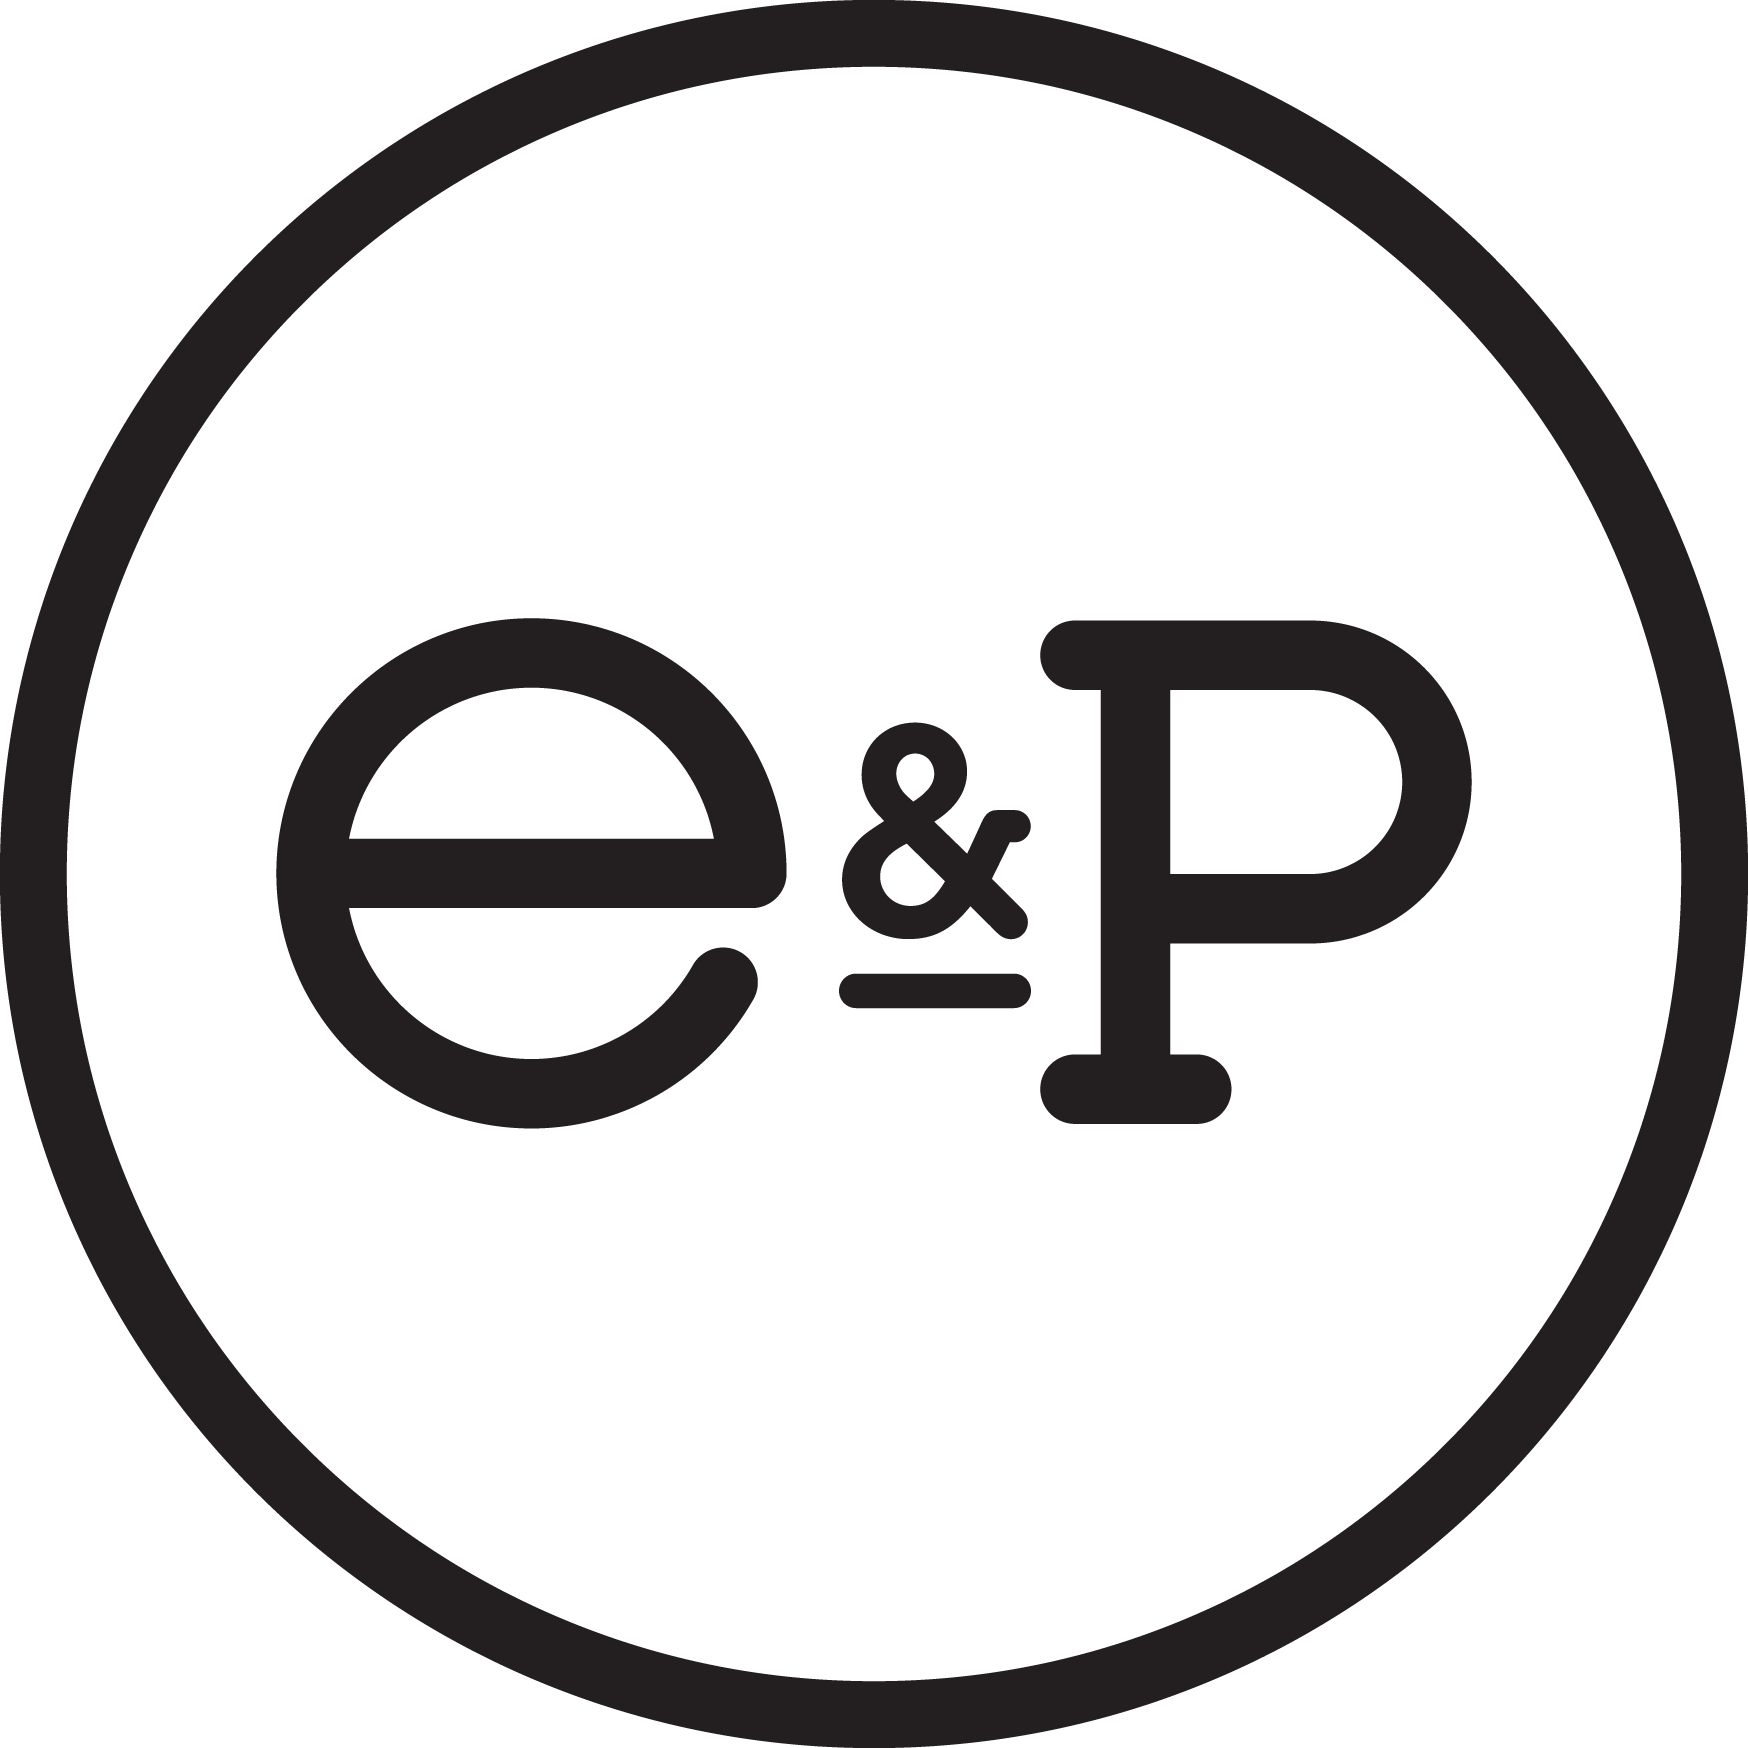 Circle logo with a letter E and P in the centre